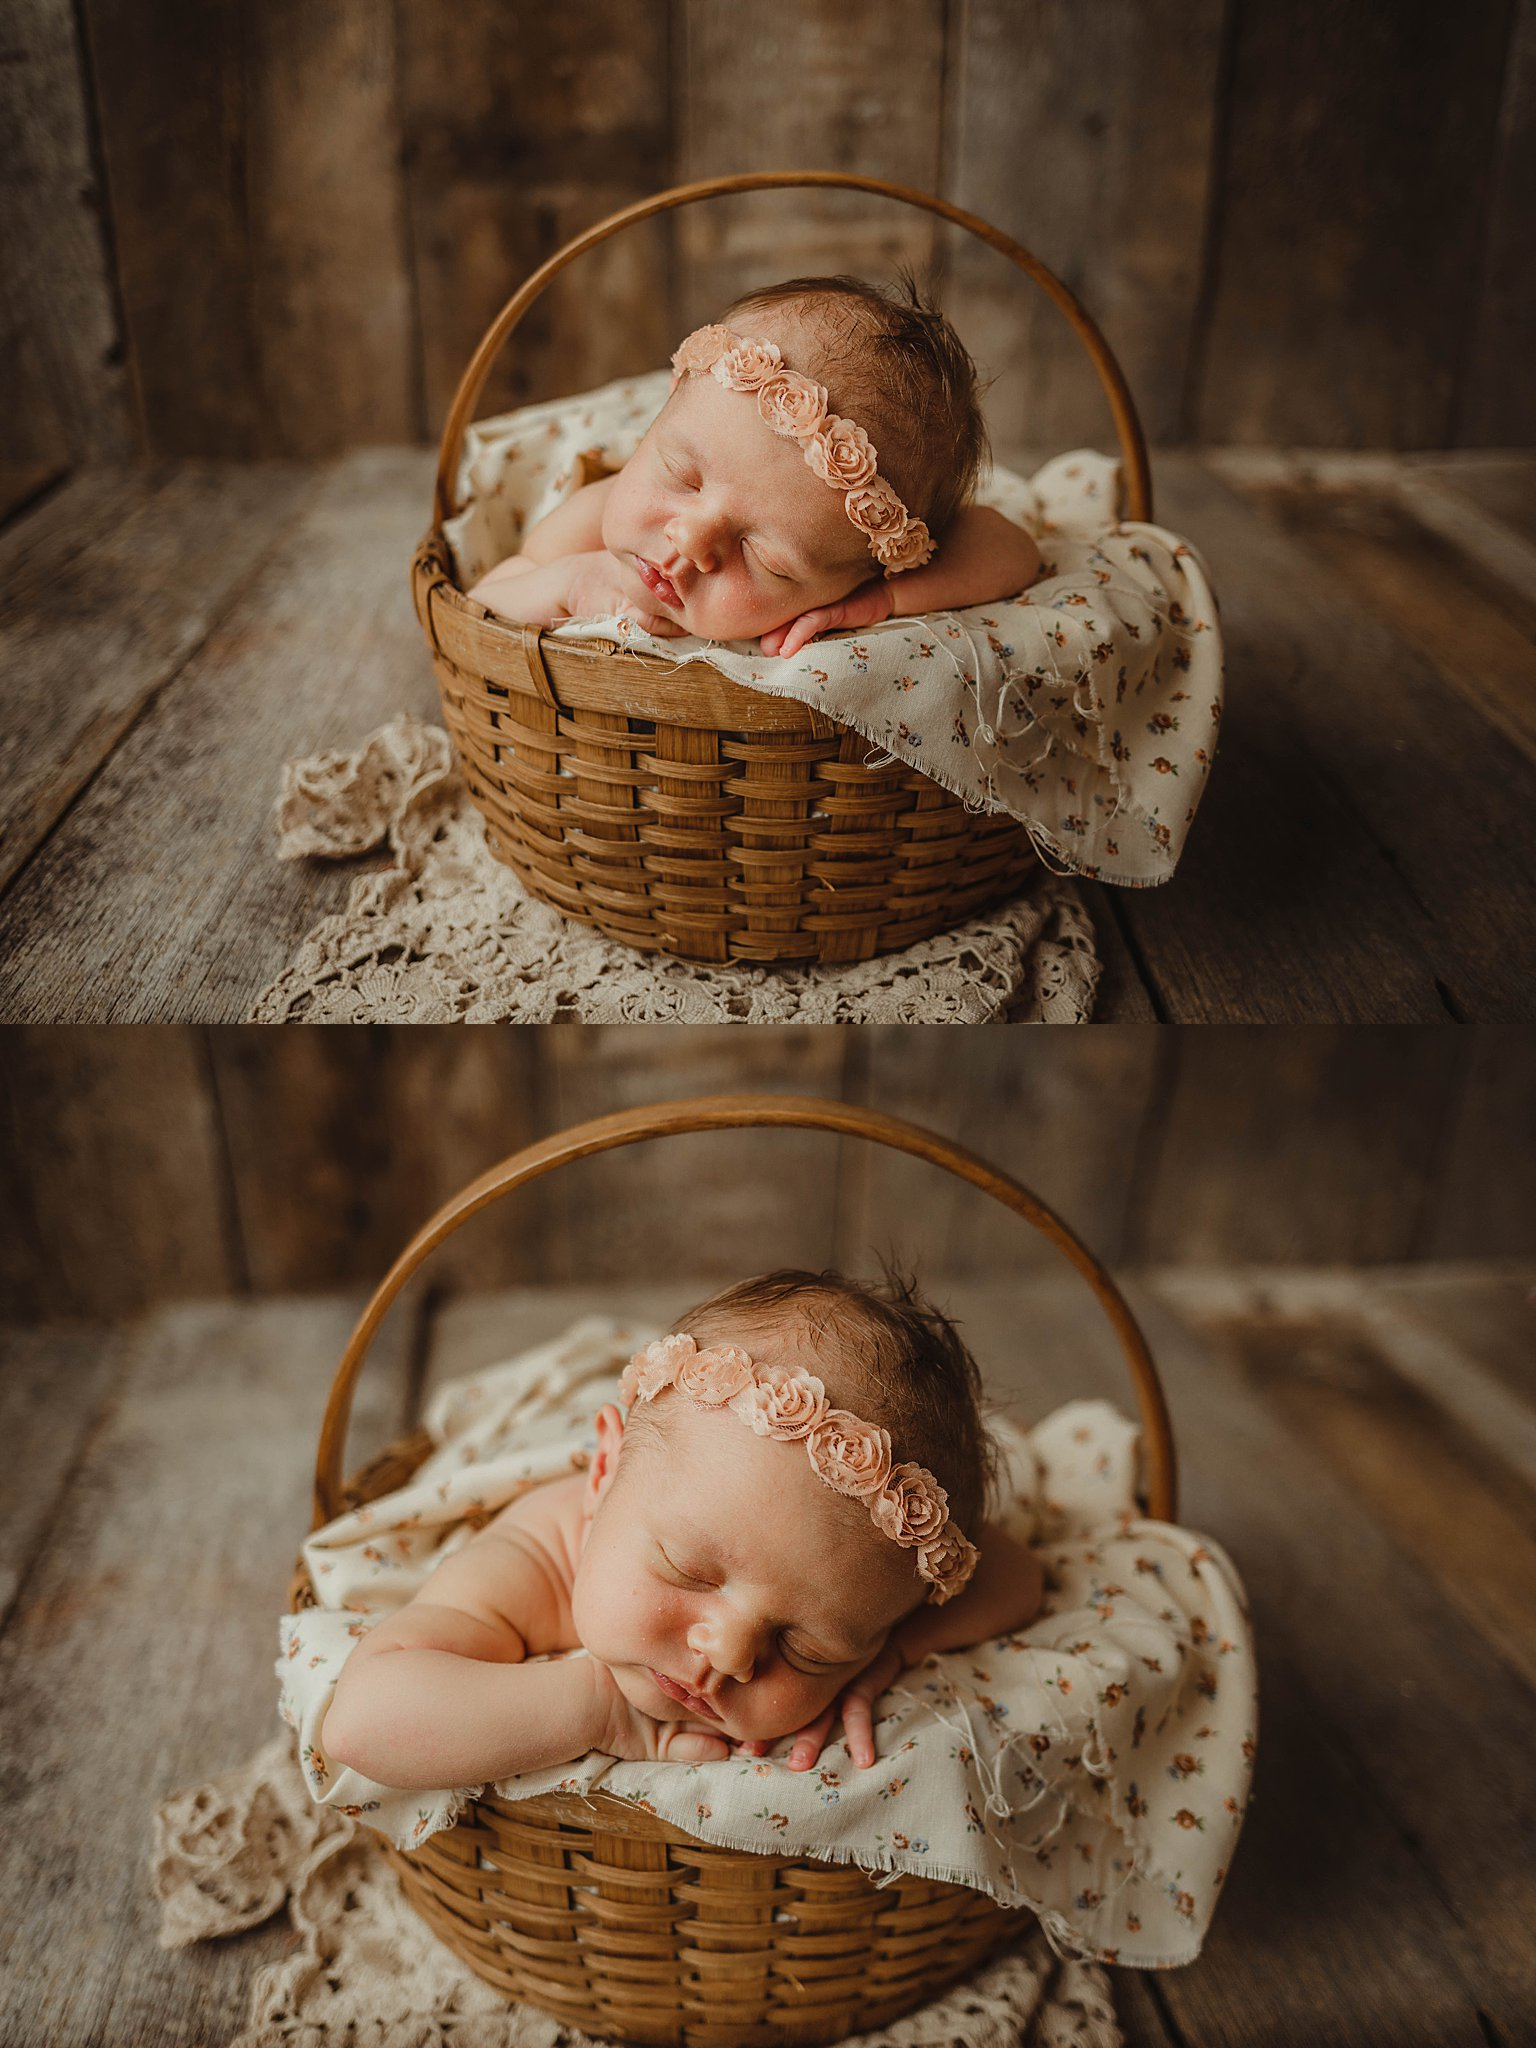 osage-beach-missouri-newborn-photo-studio-flowers-03-11-2019-4.jpg